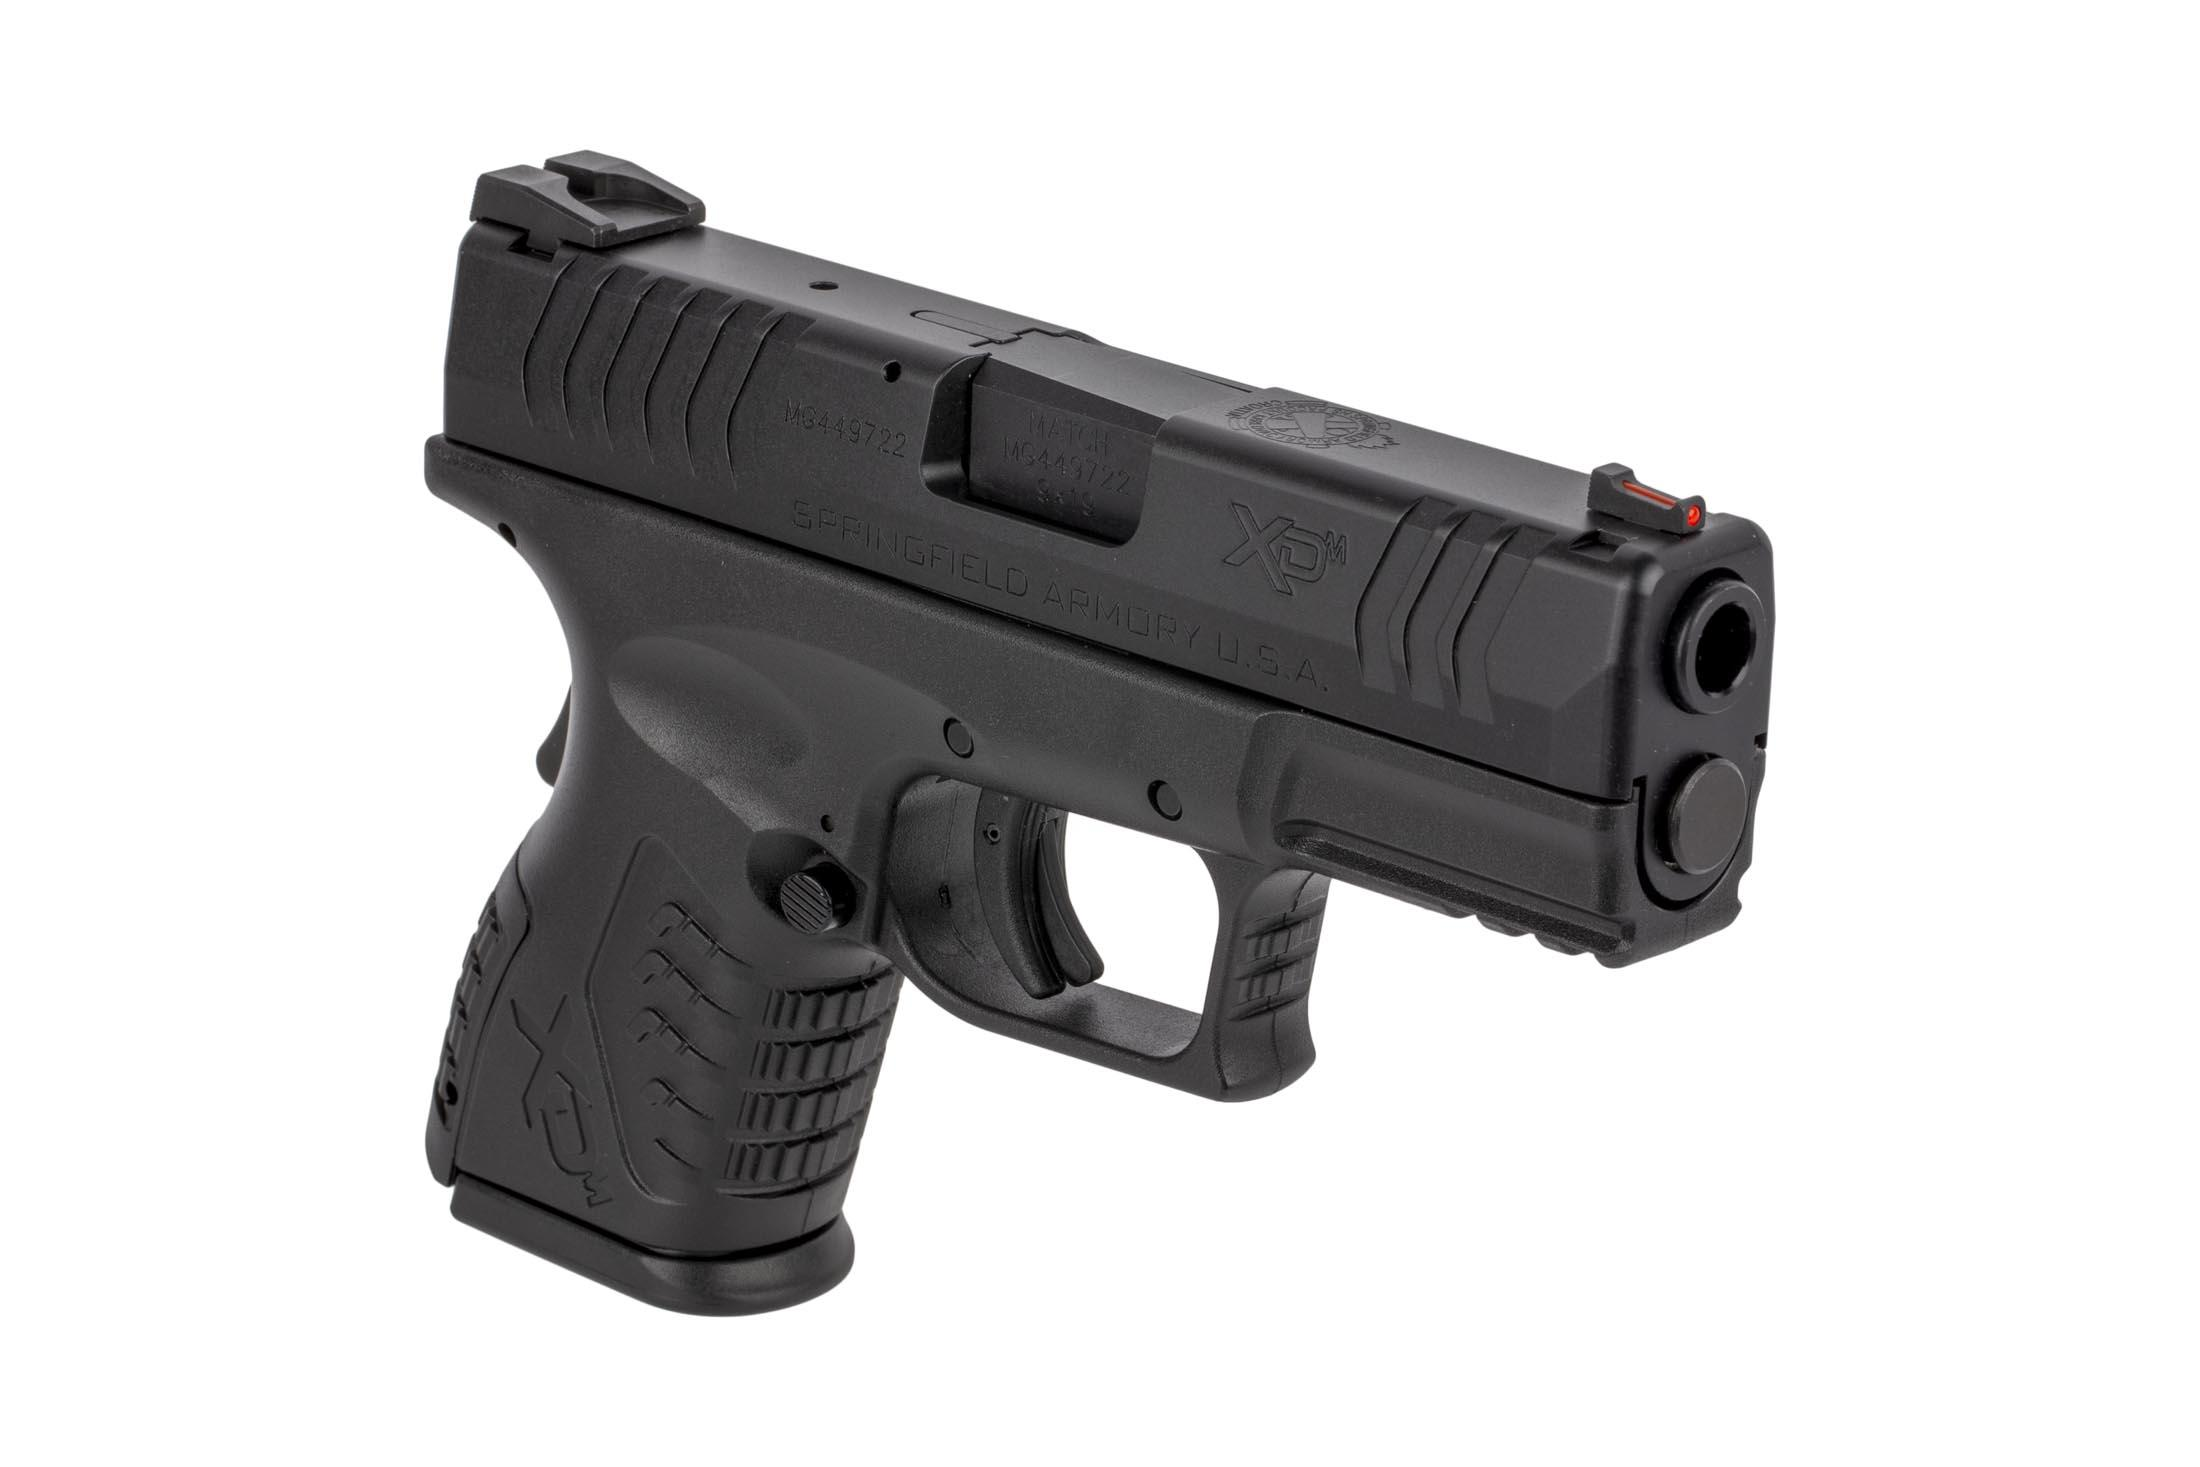 The Springfield Armory XDM is a 9mm Compact 19 round Handgun with a 3.8 inch Barrel and Black polymer frame for concealed carry